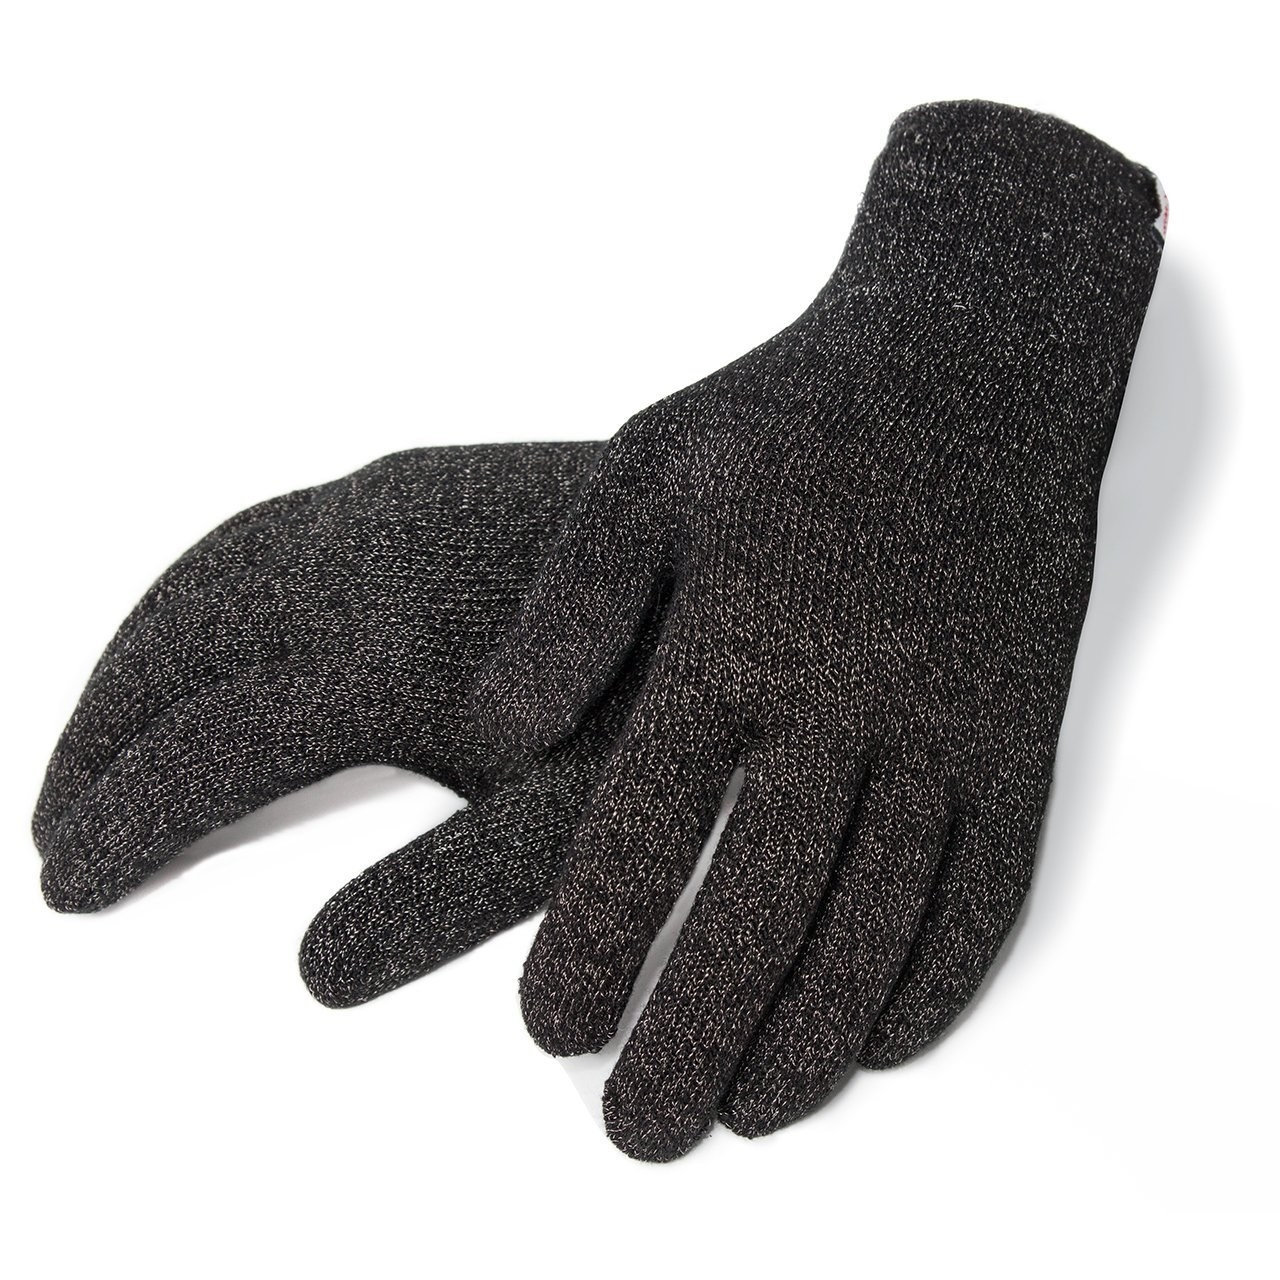 27 gloves and mittens people actually swear by